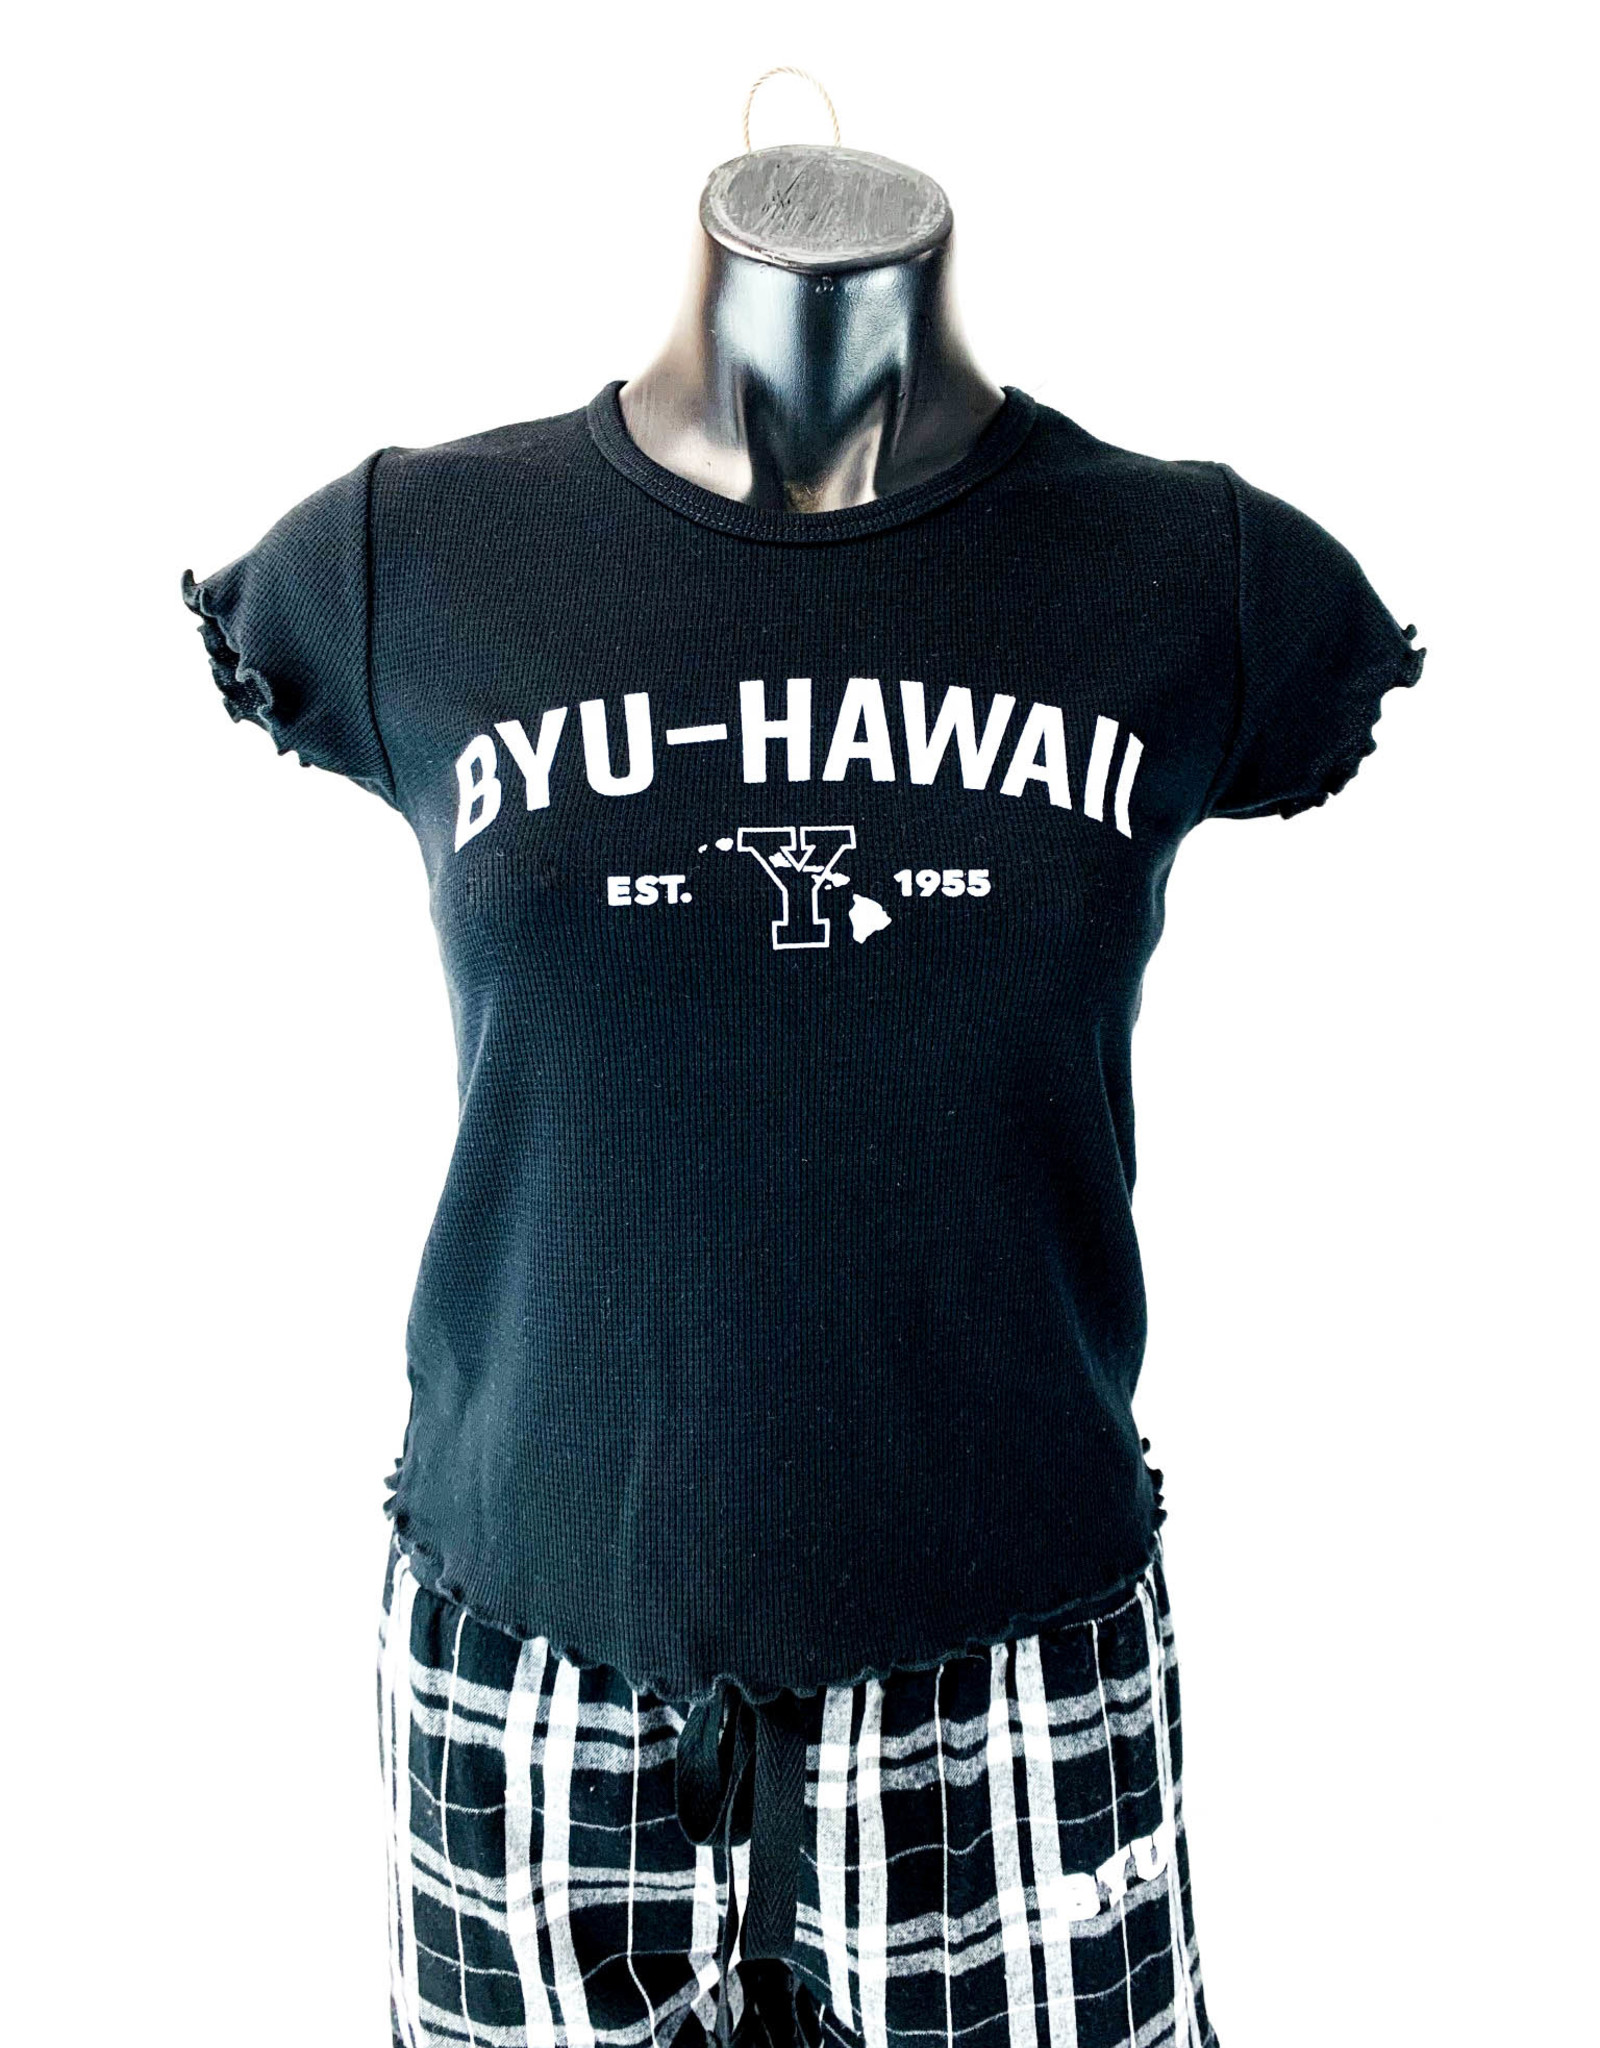 Blue 84 Clearance - BYU-Hawaii Lettuce Edge Women's Ribbed Tee